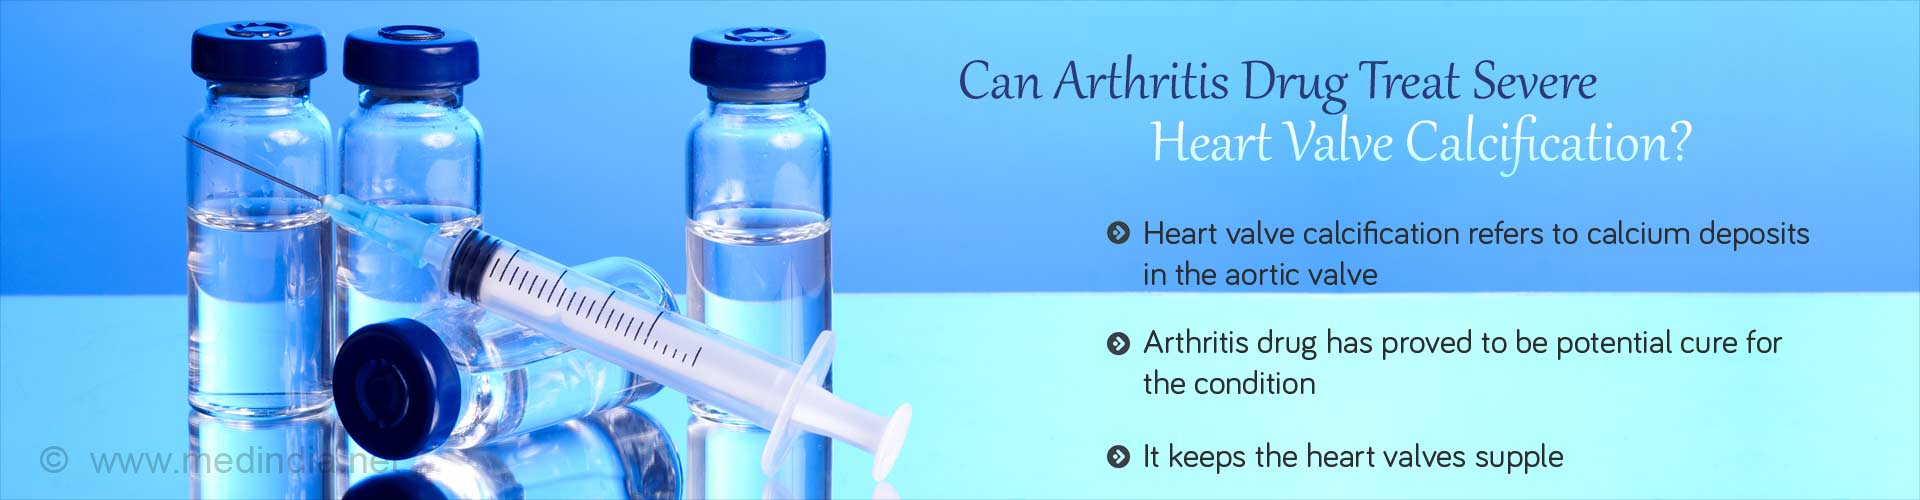 Arthritis Drug Could Potentially Treat Severe Heart Condition